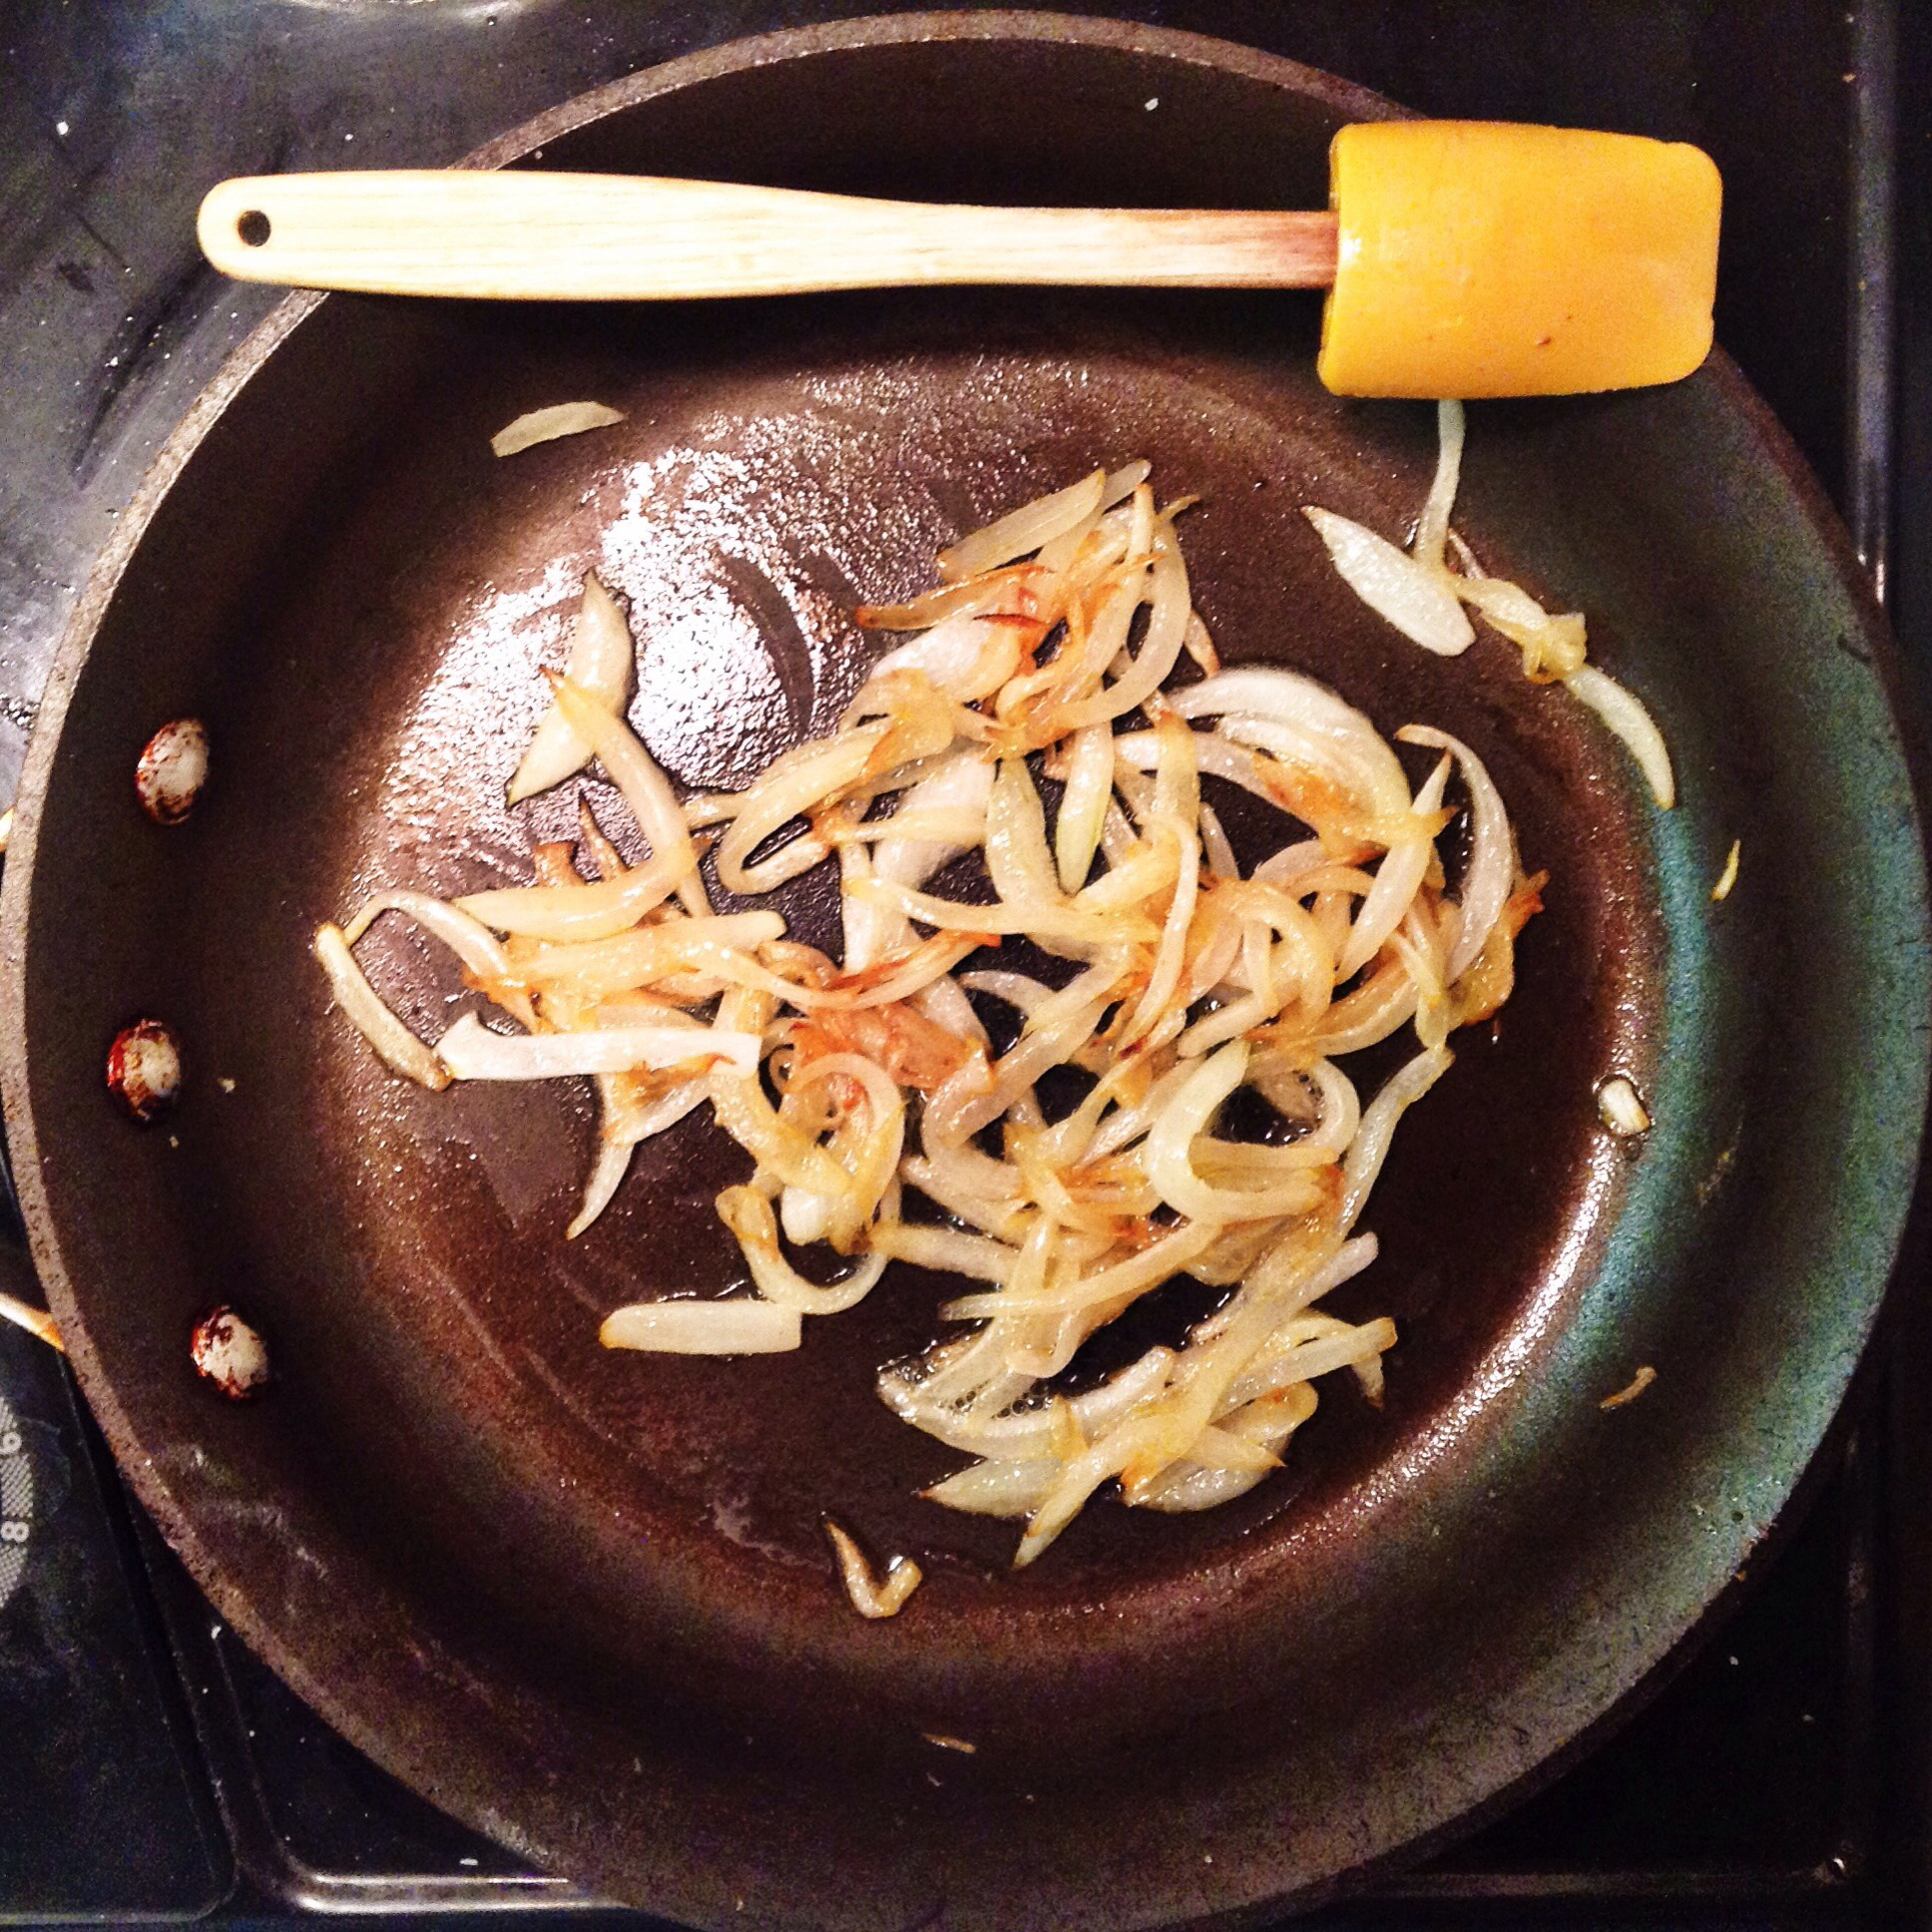 caramelizing onion slices